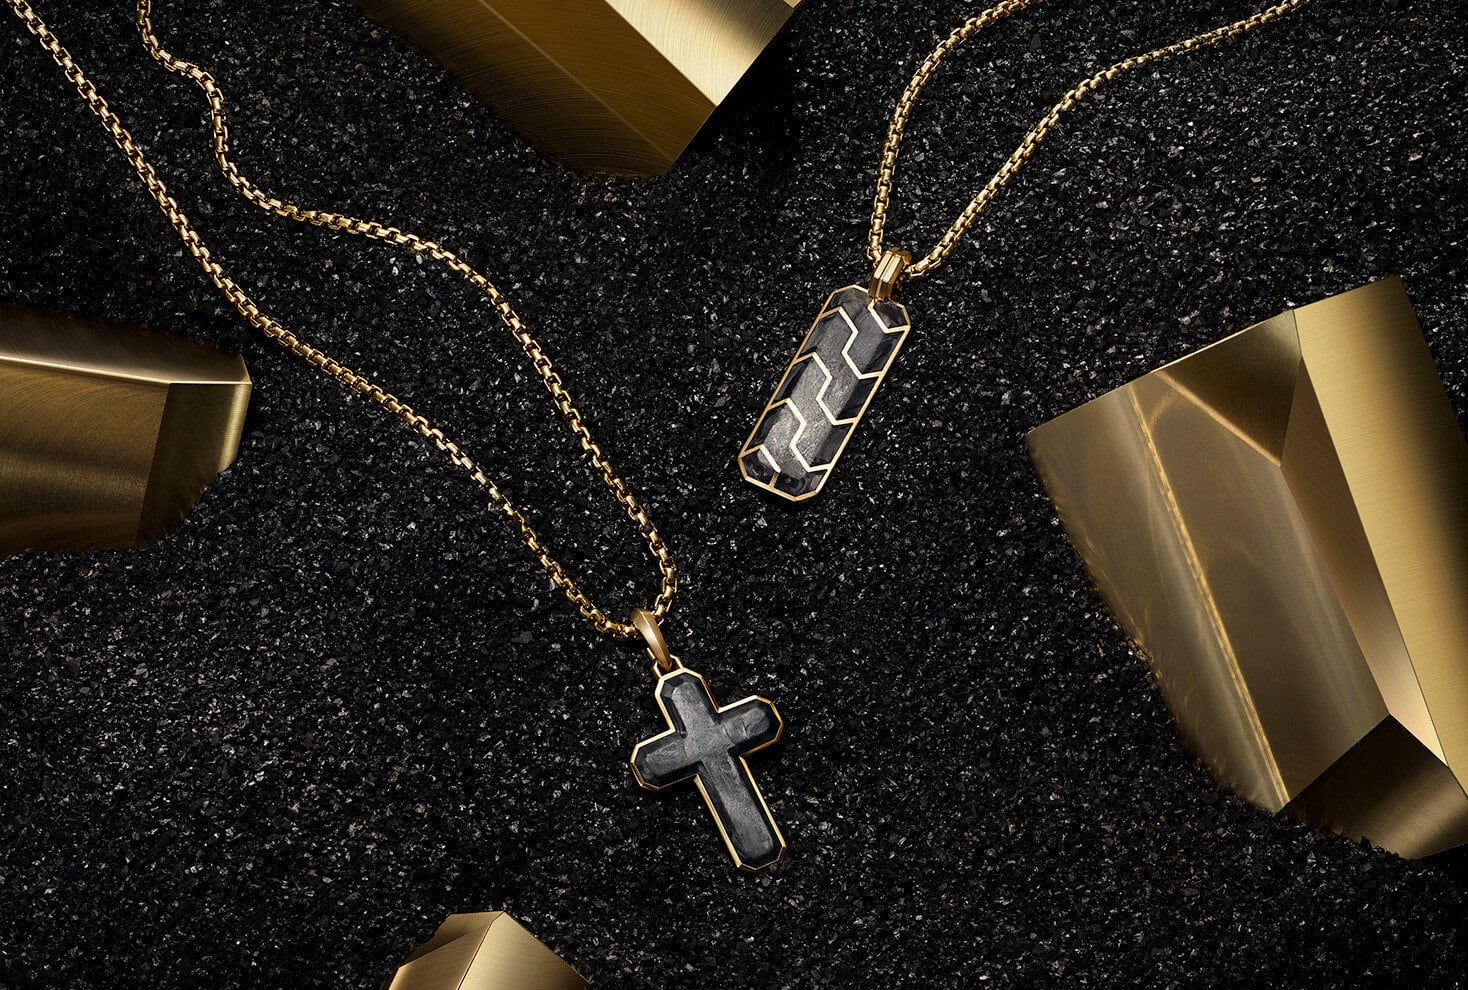 David Yurman Forged Carbon cross and ingot tags, in 18K gold with forged carbon, are strung on 18K gold chains and lay near blocks of gold in a pile of forged carbon shavings.